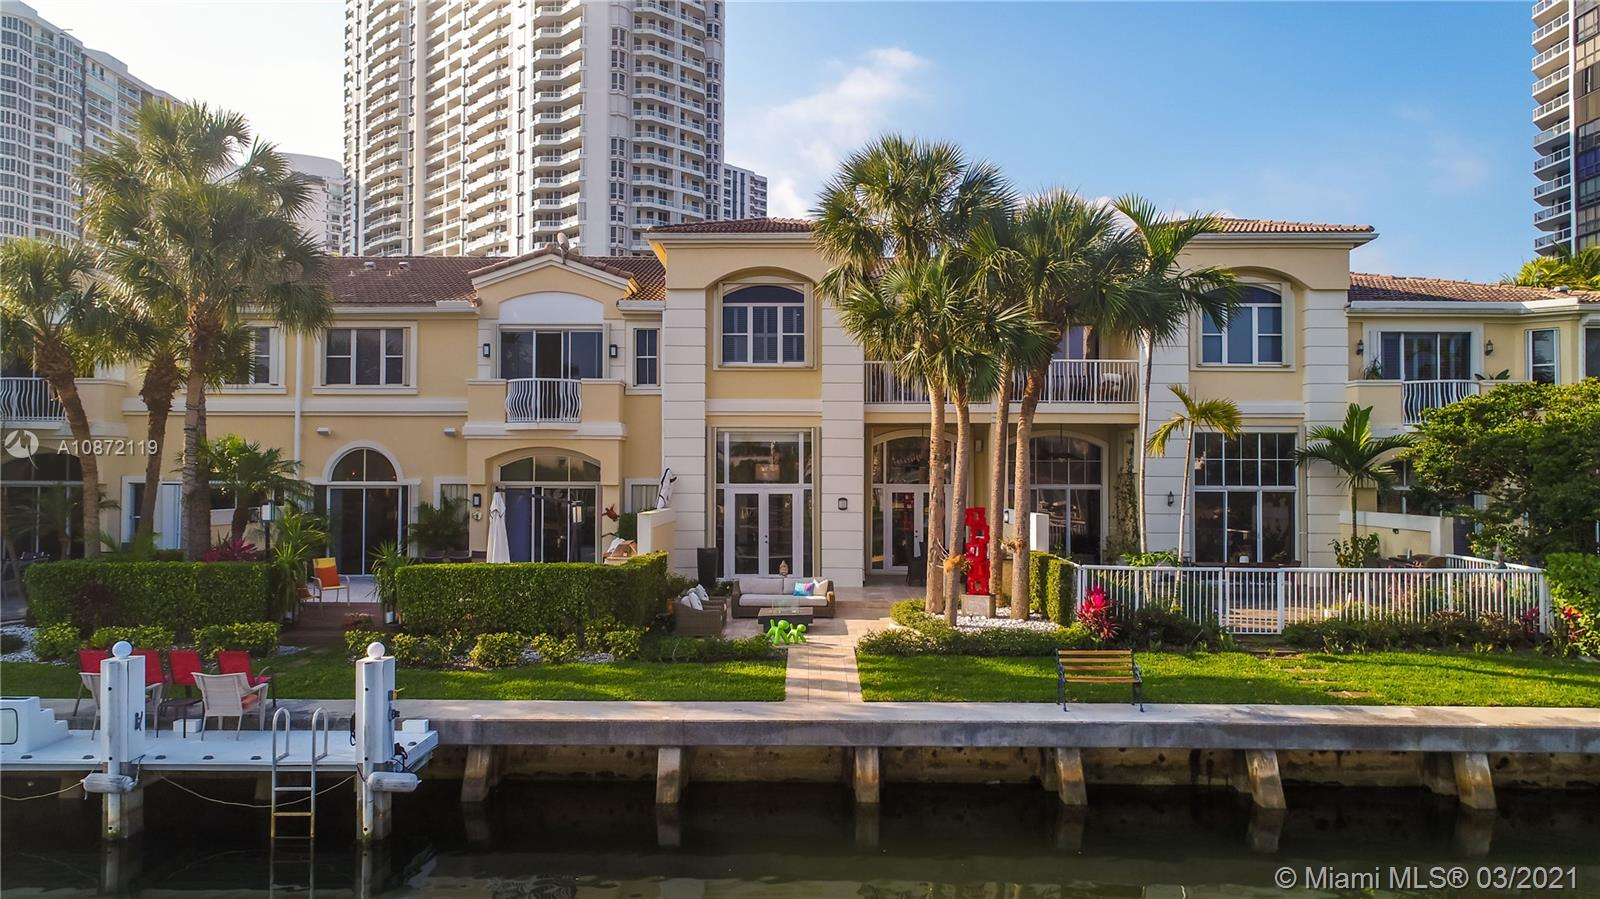 JUST REMODELED TOWNHOUSE WITH BEAUTIFUL TERRACE AND INTRACOASTAL VIEW. NEW MASTER BEDROOM HOTEL STYLE, BEAUTIFUL COMMUNITY WITH NEW SPA AND TENNIS COURTS AND PLAYGROUND FOR CHILDREN. VERY HIGH CEILINGS. ONE MASTER BEDROOM COULD BE CHANGE TO TWO REGULAR BEDROOMS AS SELLER EXPENSE.  HIS & HERS BATHROOM.